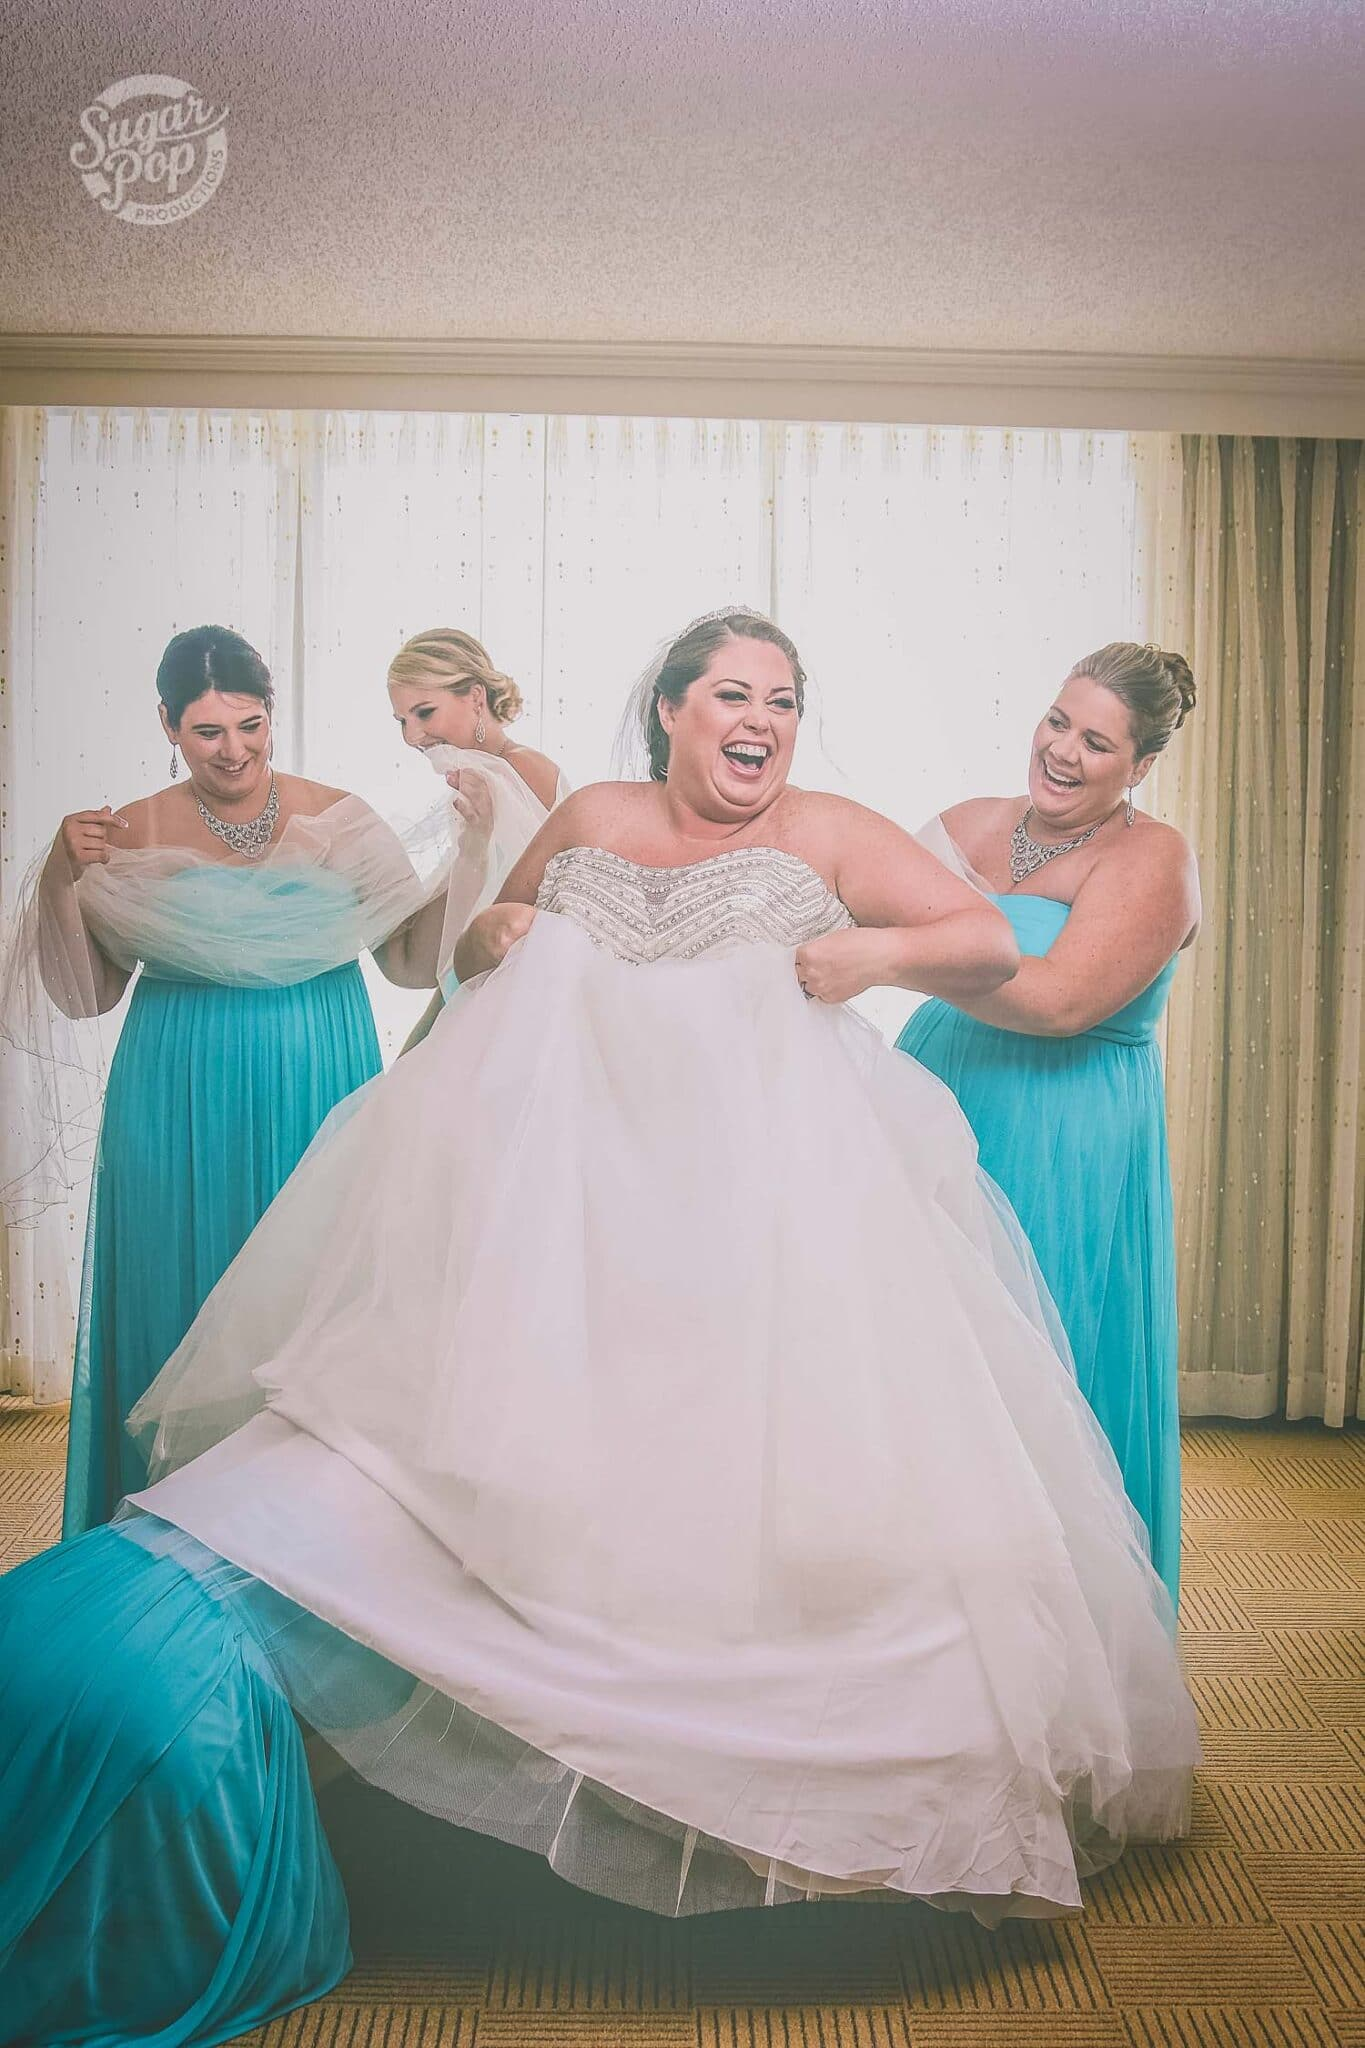 bride laughs as she holds up her big ball gown wedding dress for a bridesmaid to go under and her other three bridesmaids helping her all wearing teal